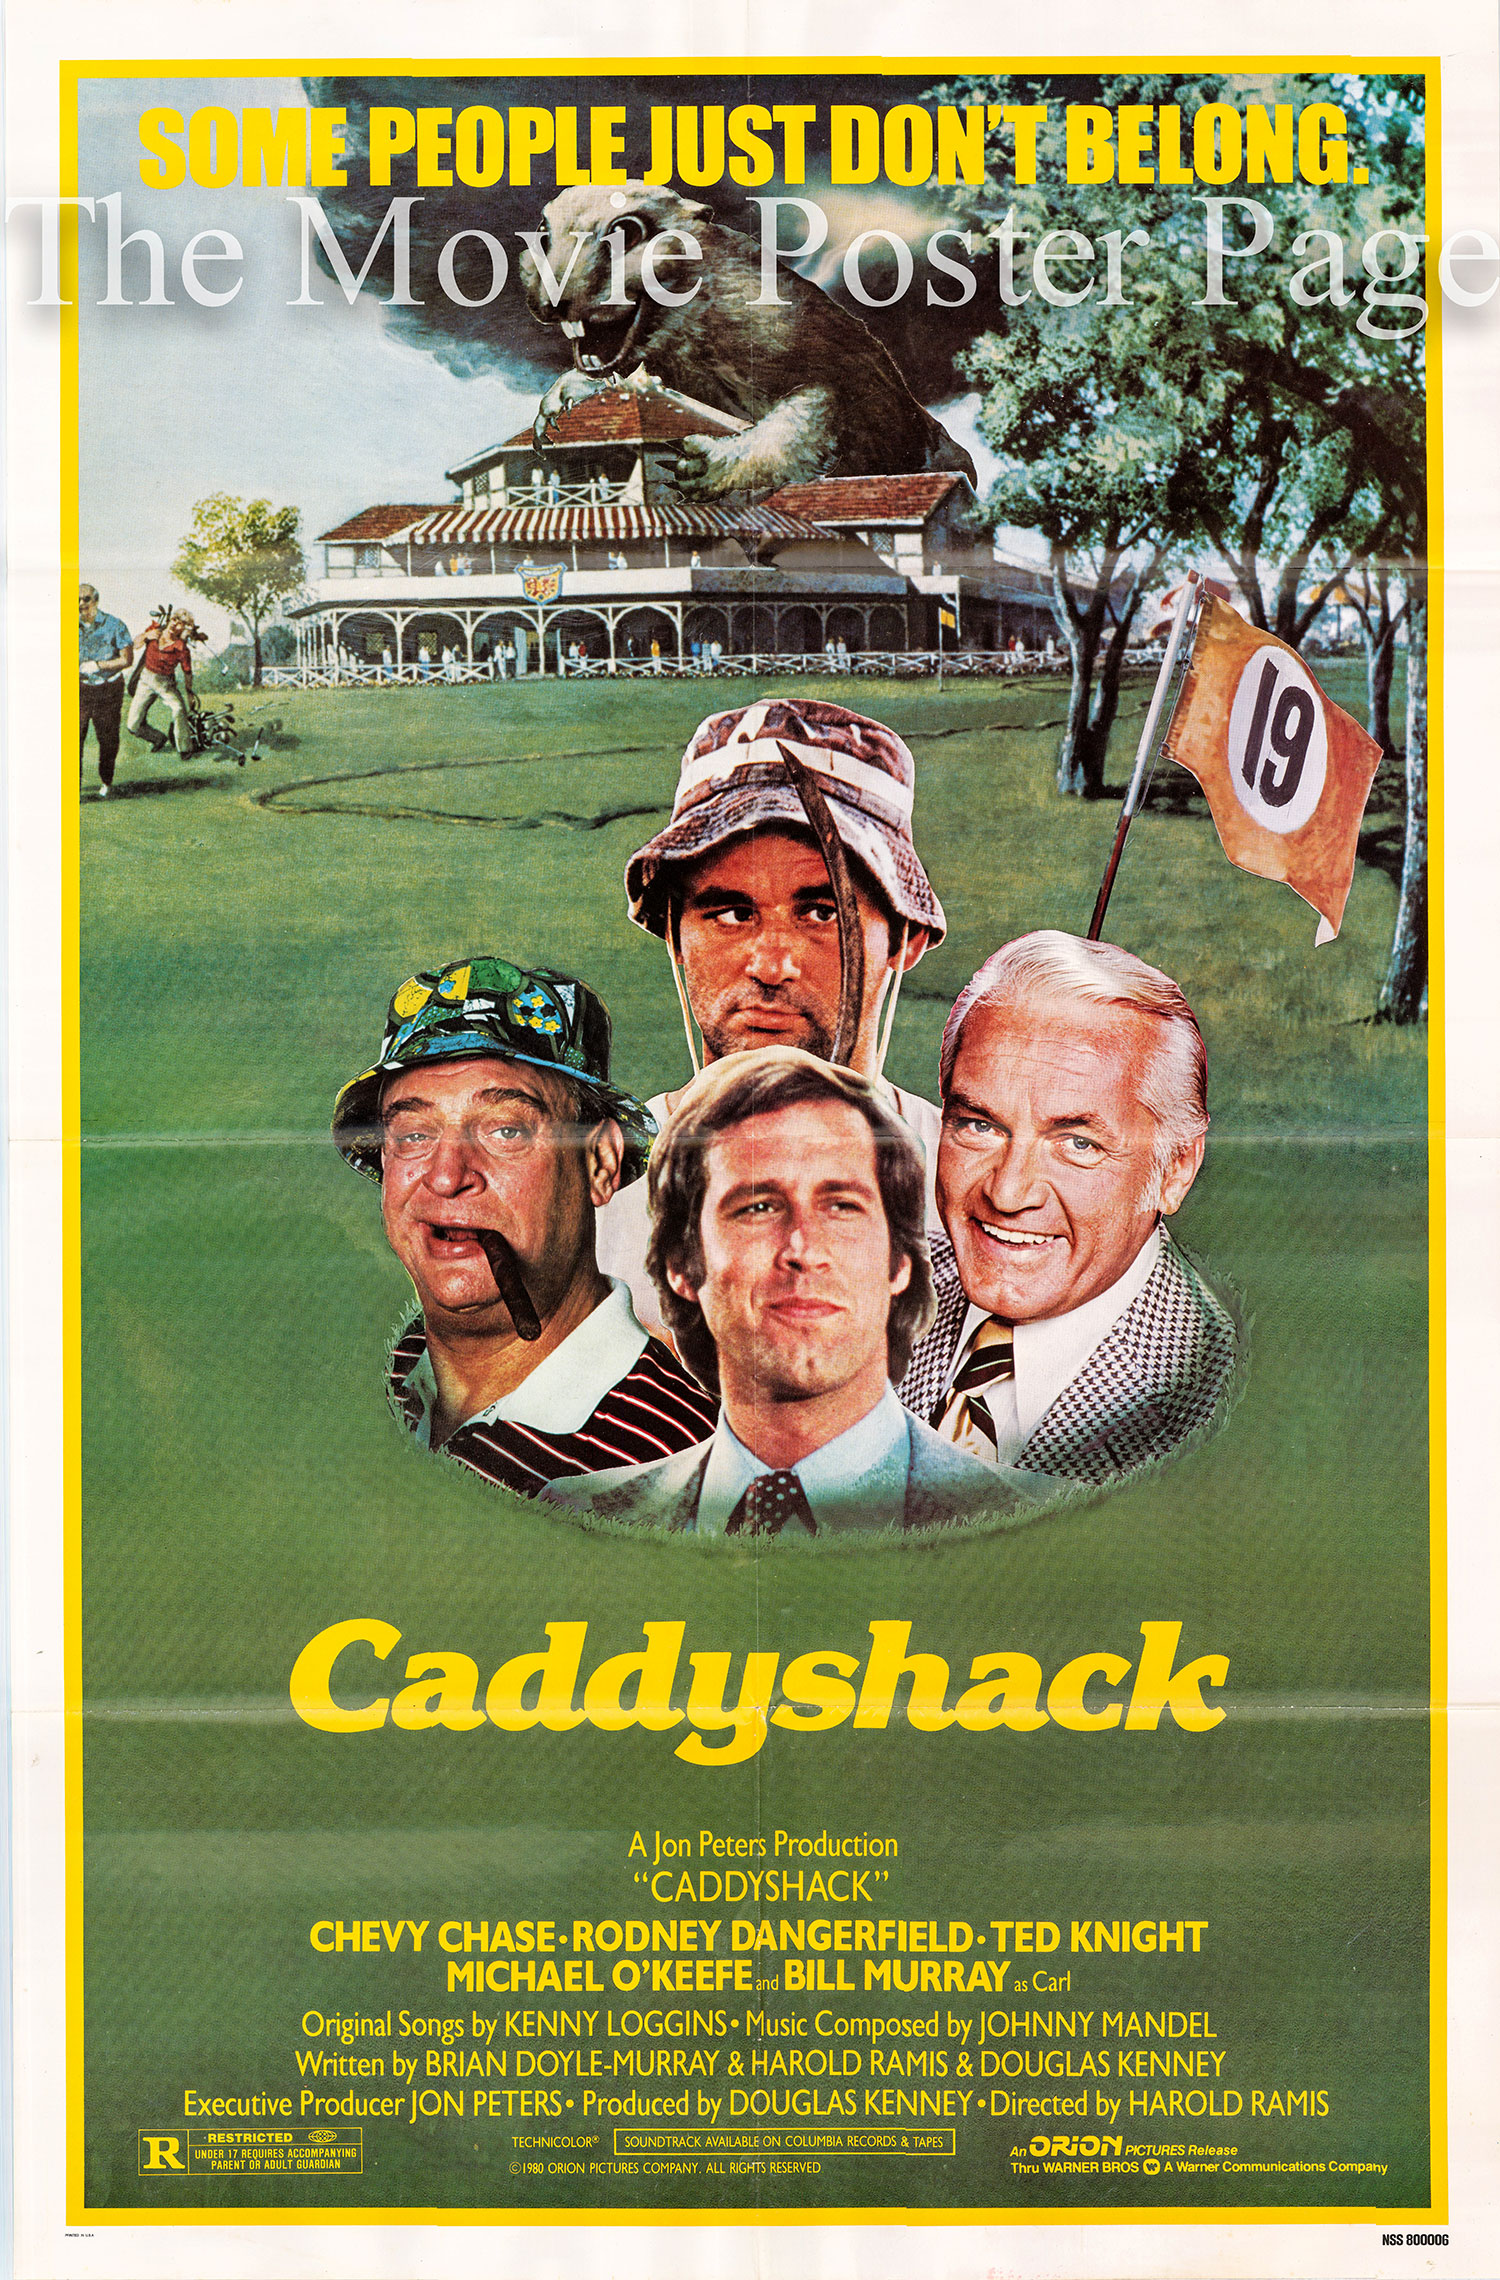 Pictured is a US one-sheet promotional poster for the 1980 Harold Ramis film Caddyshack starring Chevy Chase, Rodney Dangerfield and Ted Knight.